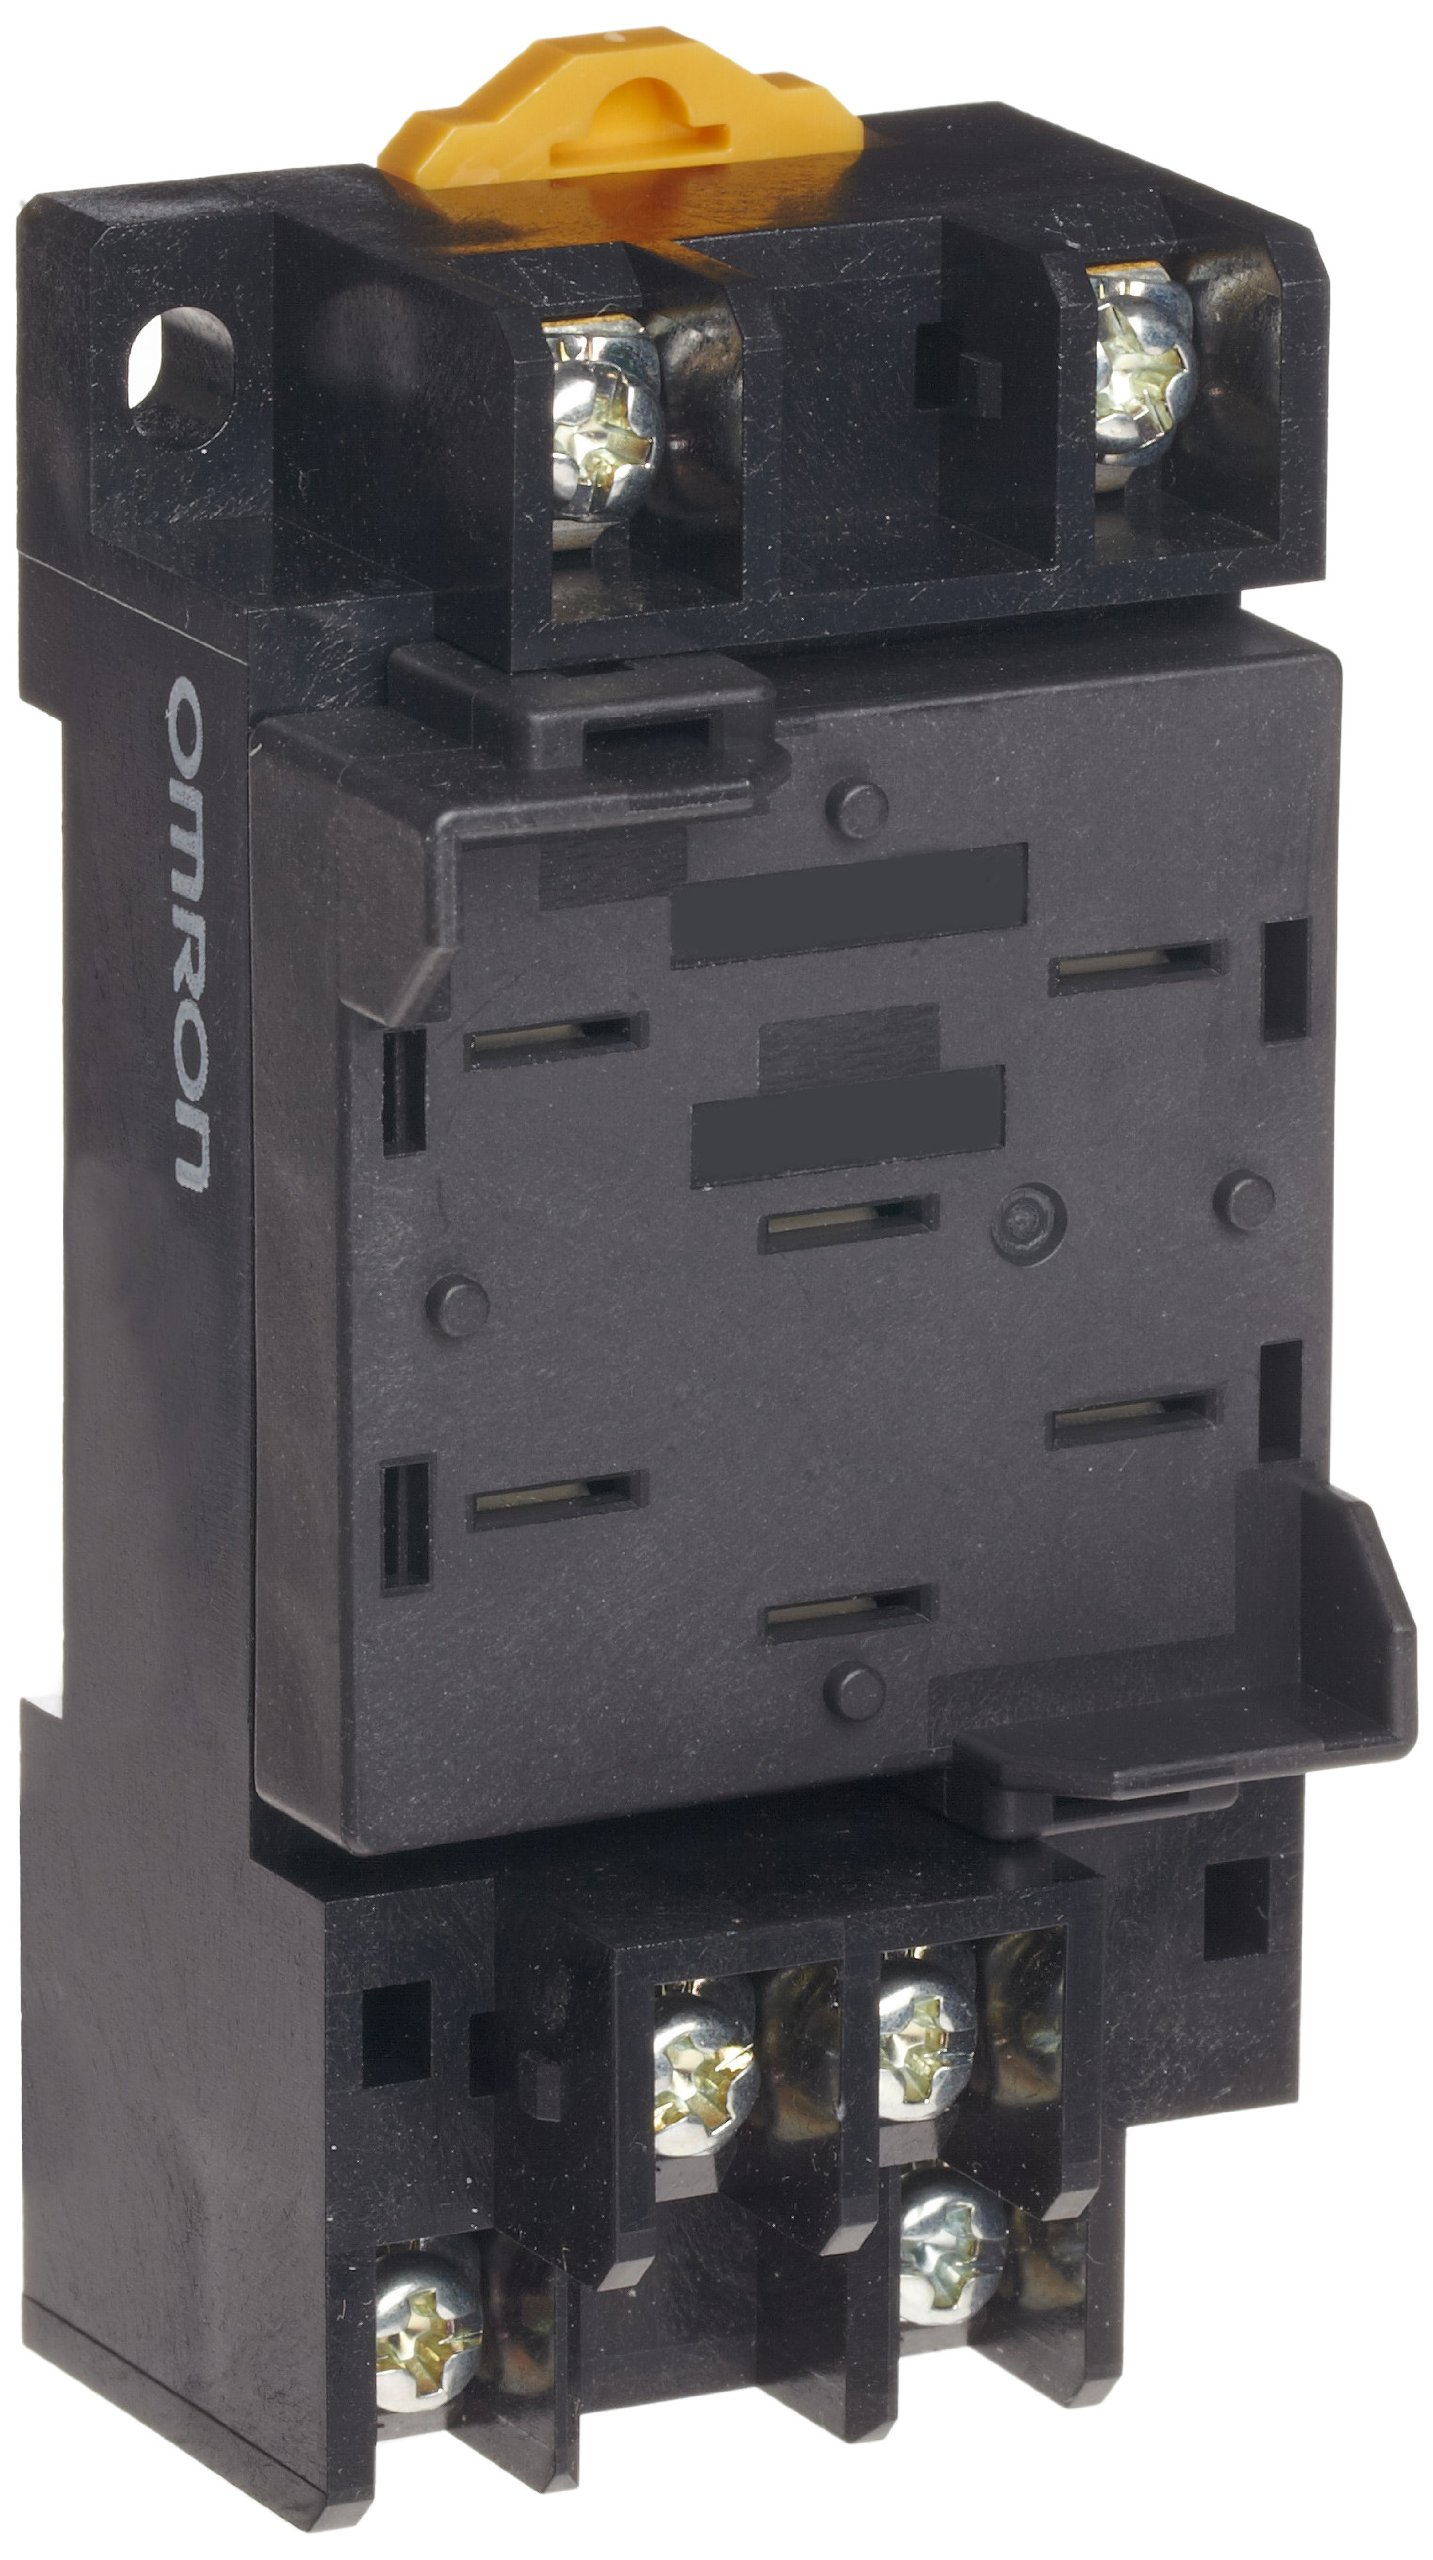 Omron P7MF-06-D General Purpose Socket, Diode Type, Screw Terminal, DIN Rail/Panel Mounting, For Use With MKS-X Series Relays